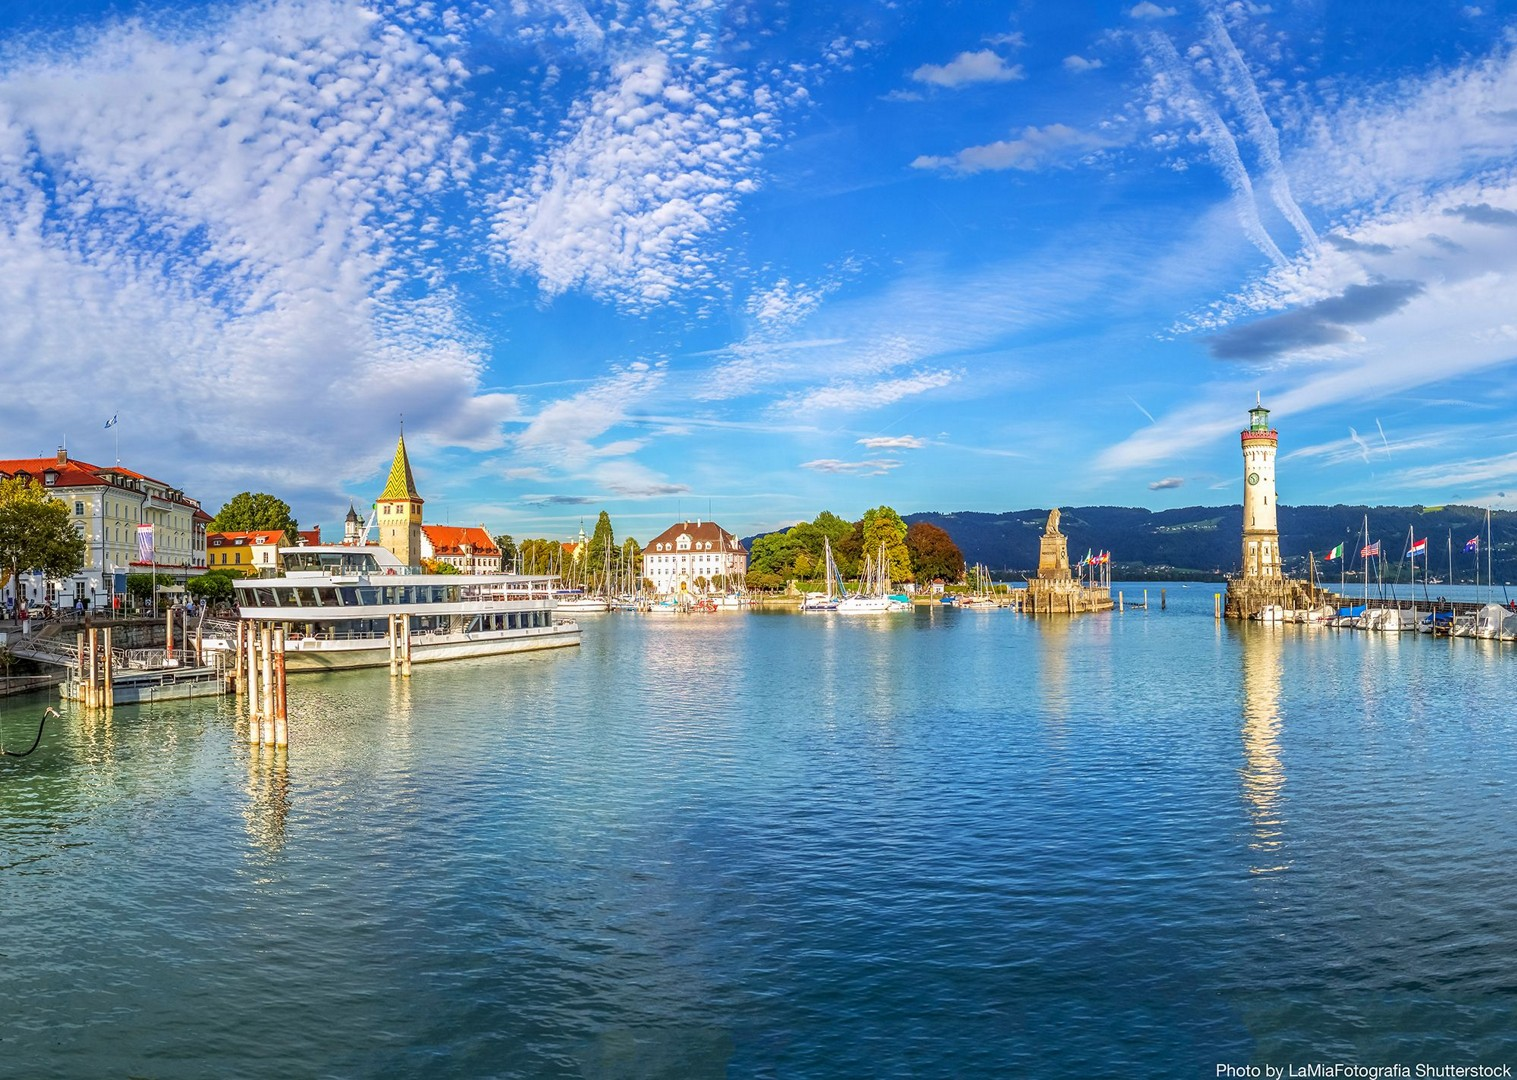 Photo LaMiaFotografia shutterstock_379688056.jpg - Germany, Austria and Switzerland - Lake Constance - Supported Leisure Cycling Holiday - Leisure Cycling